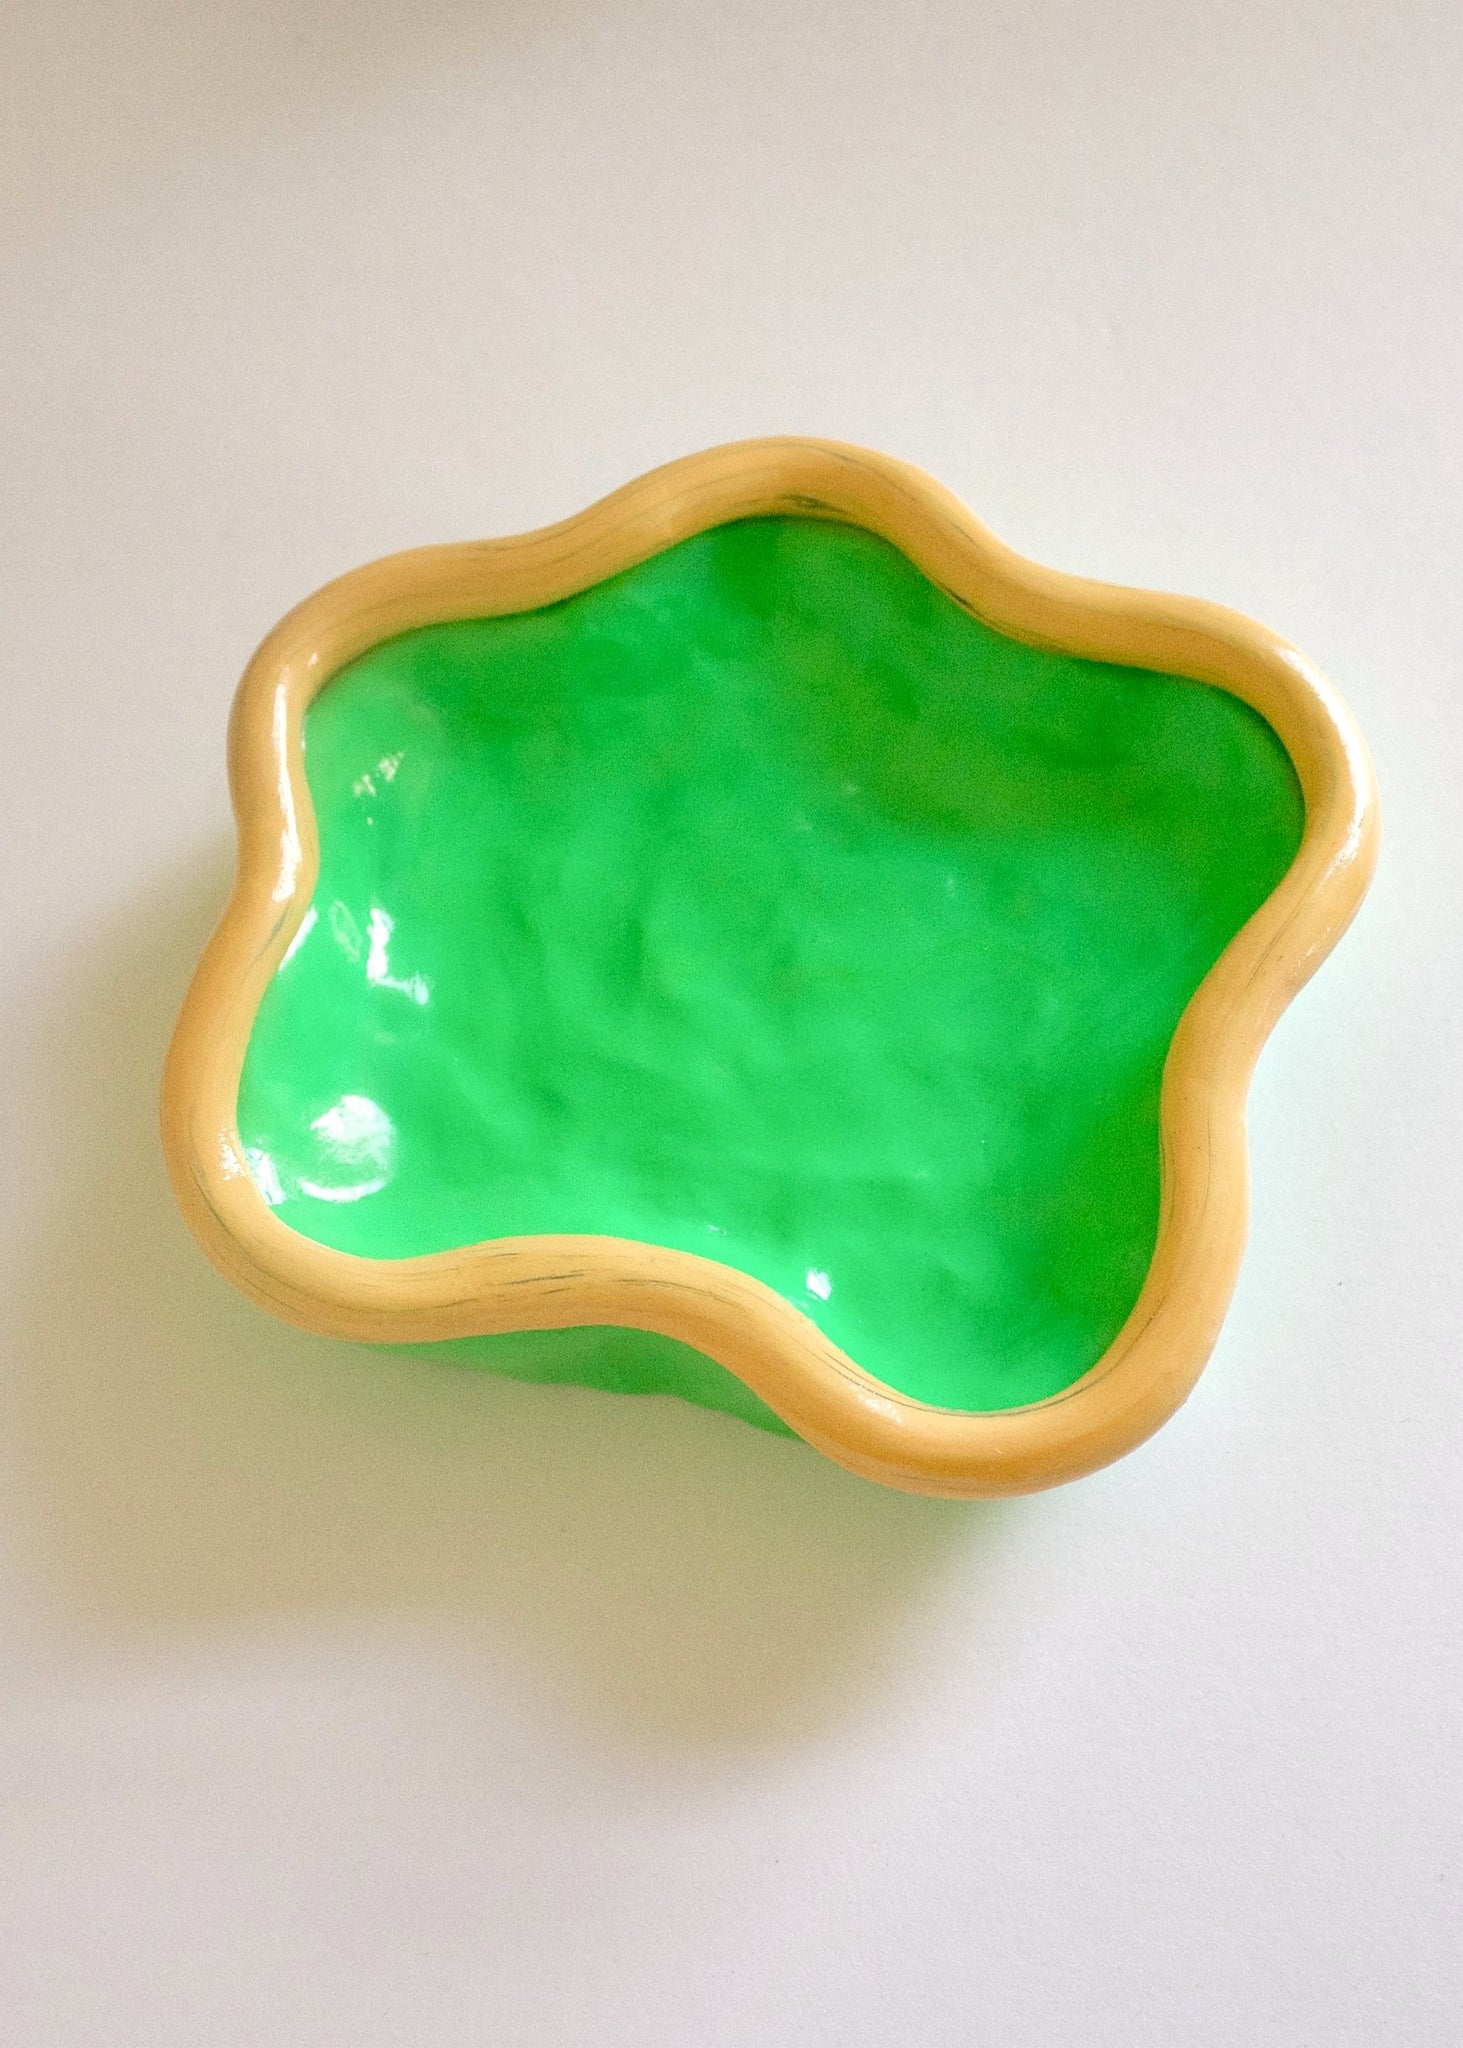 SQUIGGLE TRINKET DISH - GREEN/SPECKLED CREAMSICLE